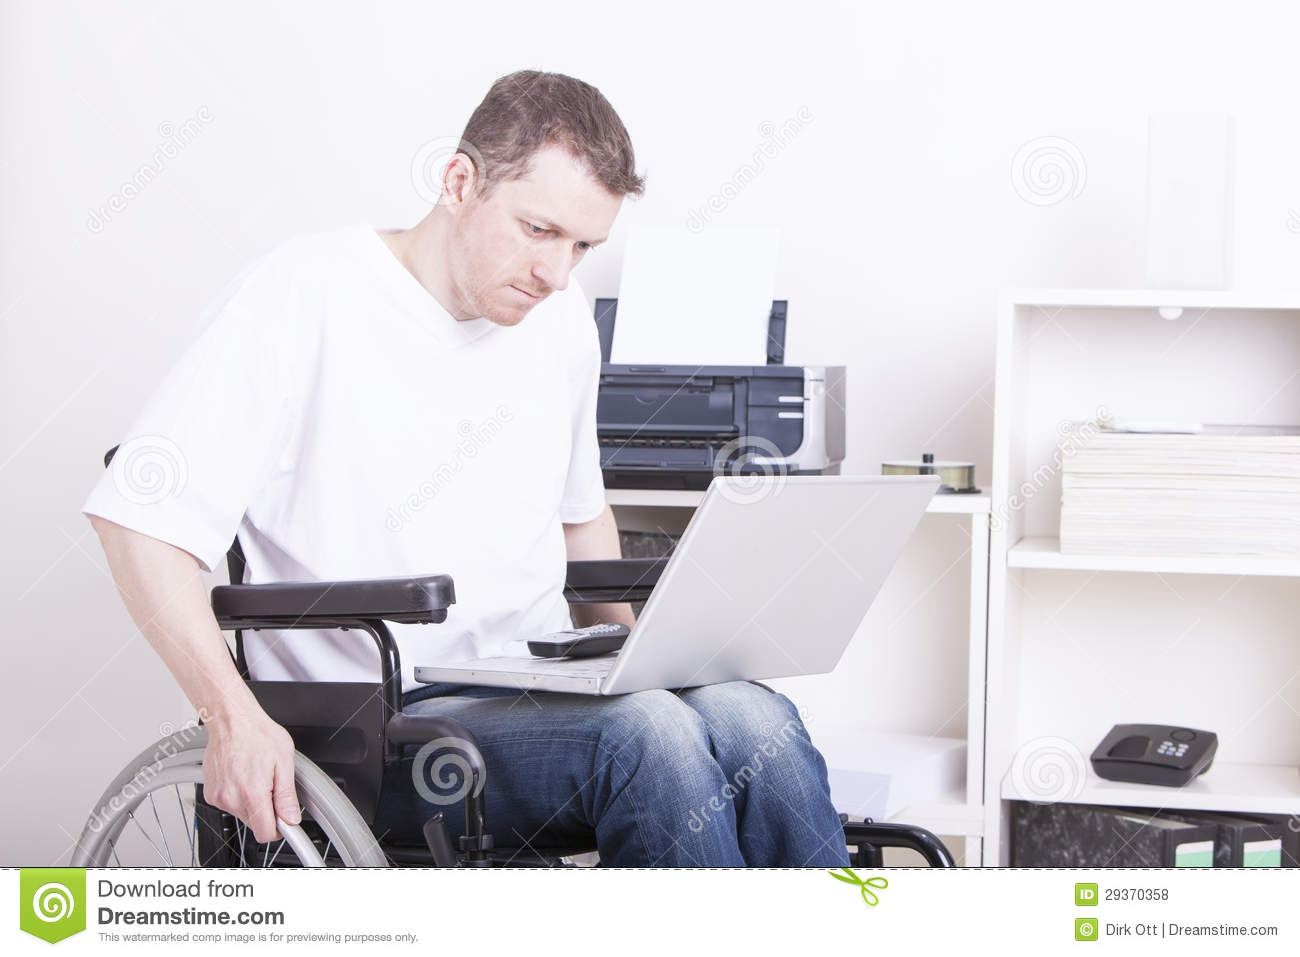 Young disabled man in wheelchair working in a home office using a